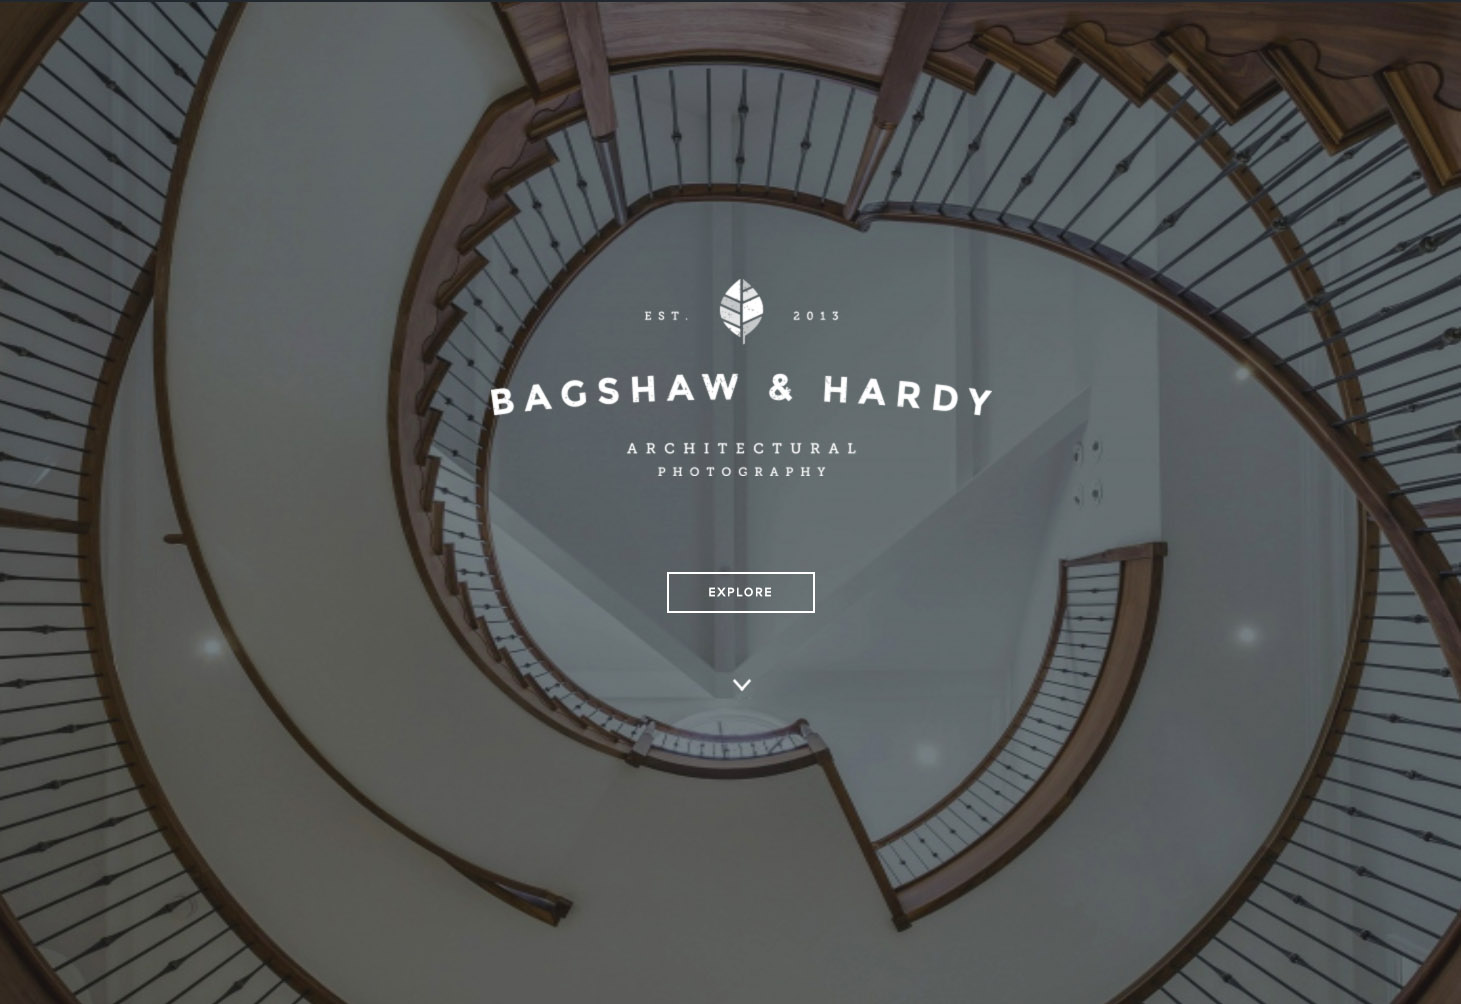 New Bagshaw & Hardy website launch